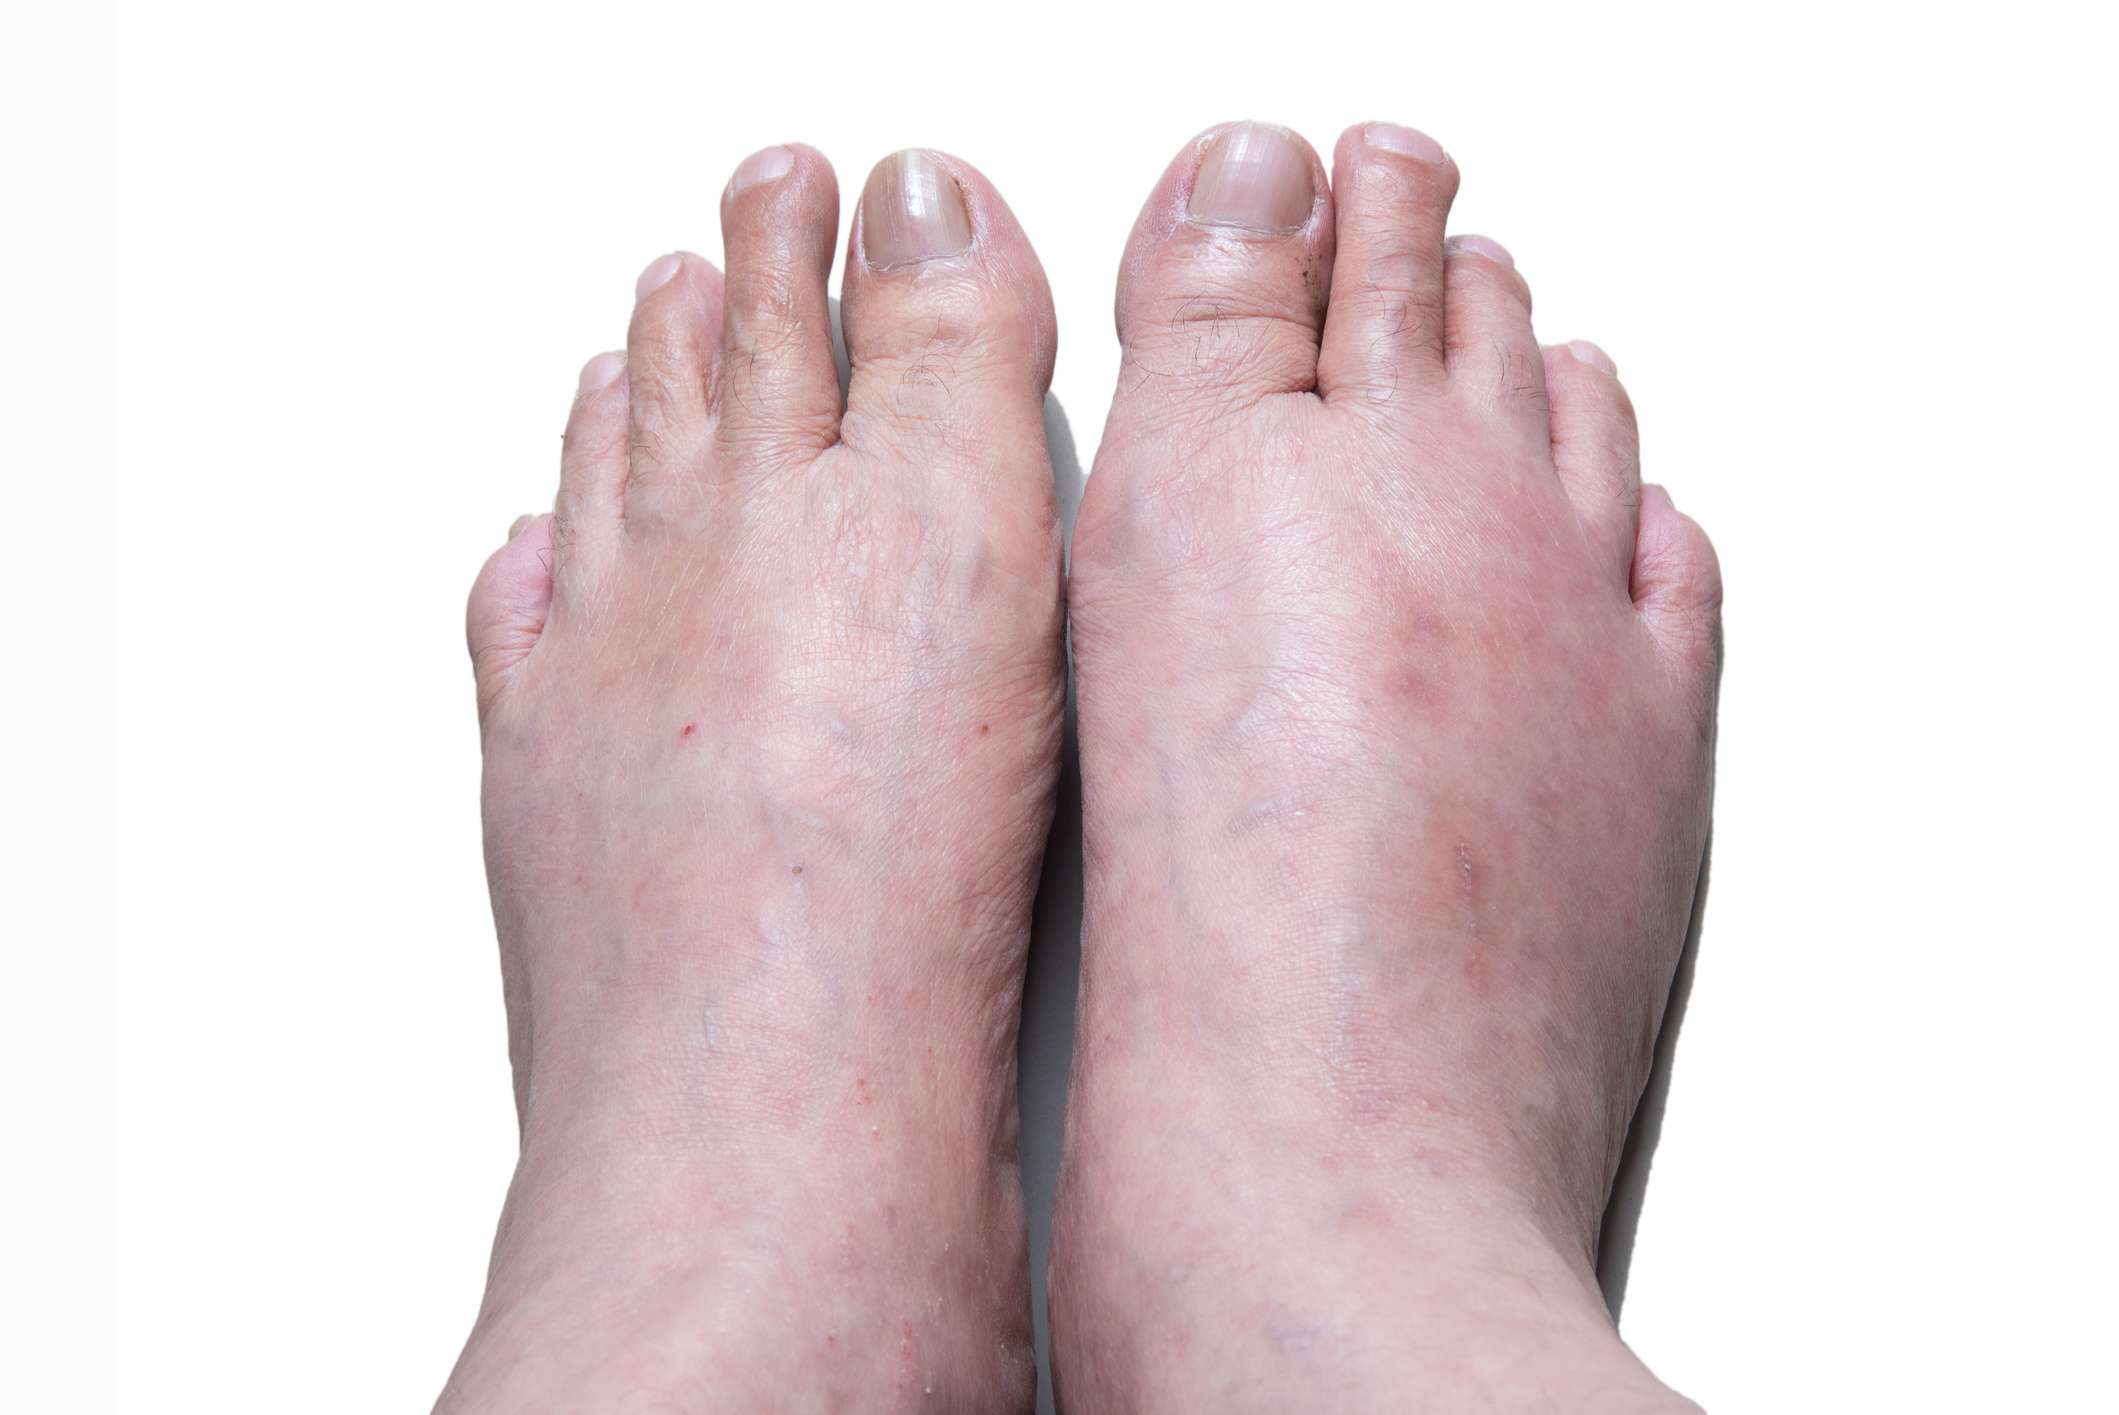 Gout Symptoms Pictures Treatment And More